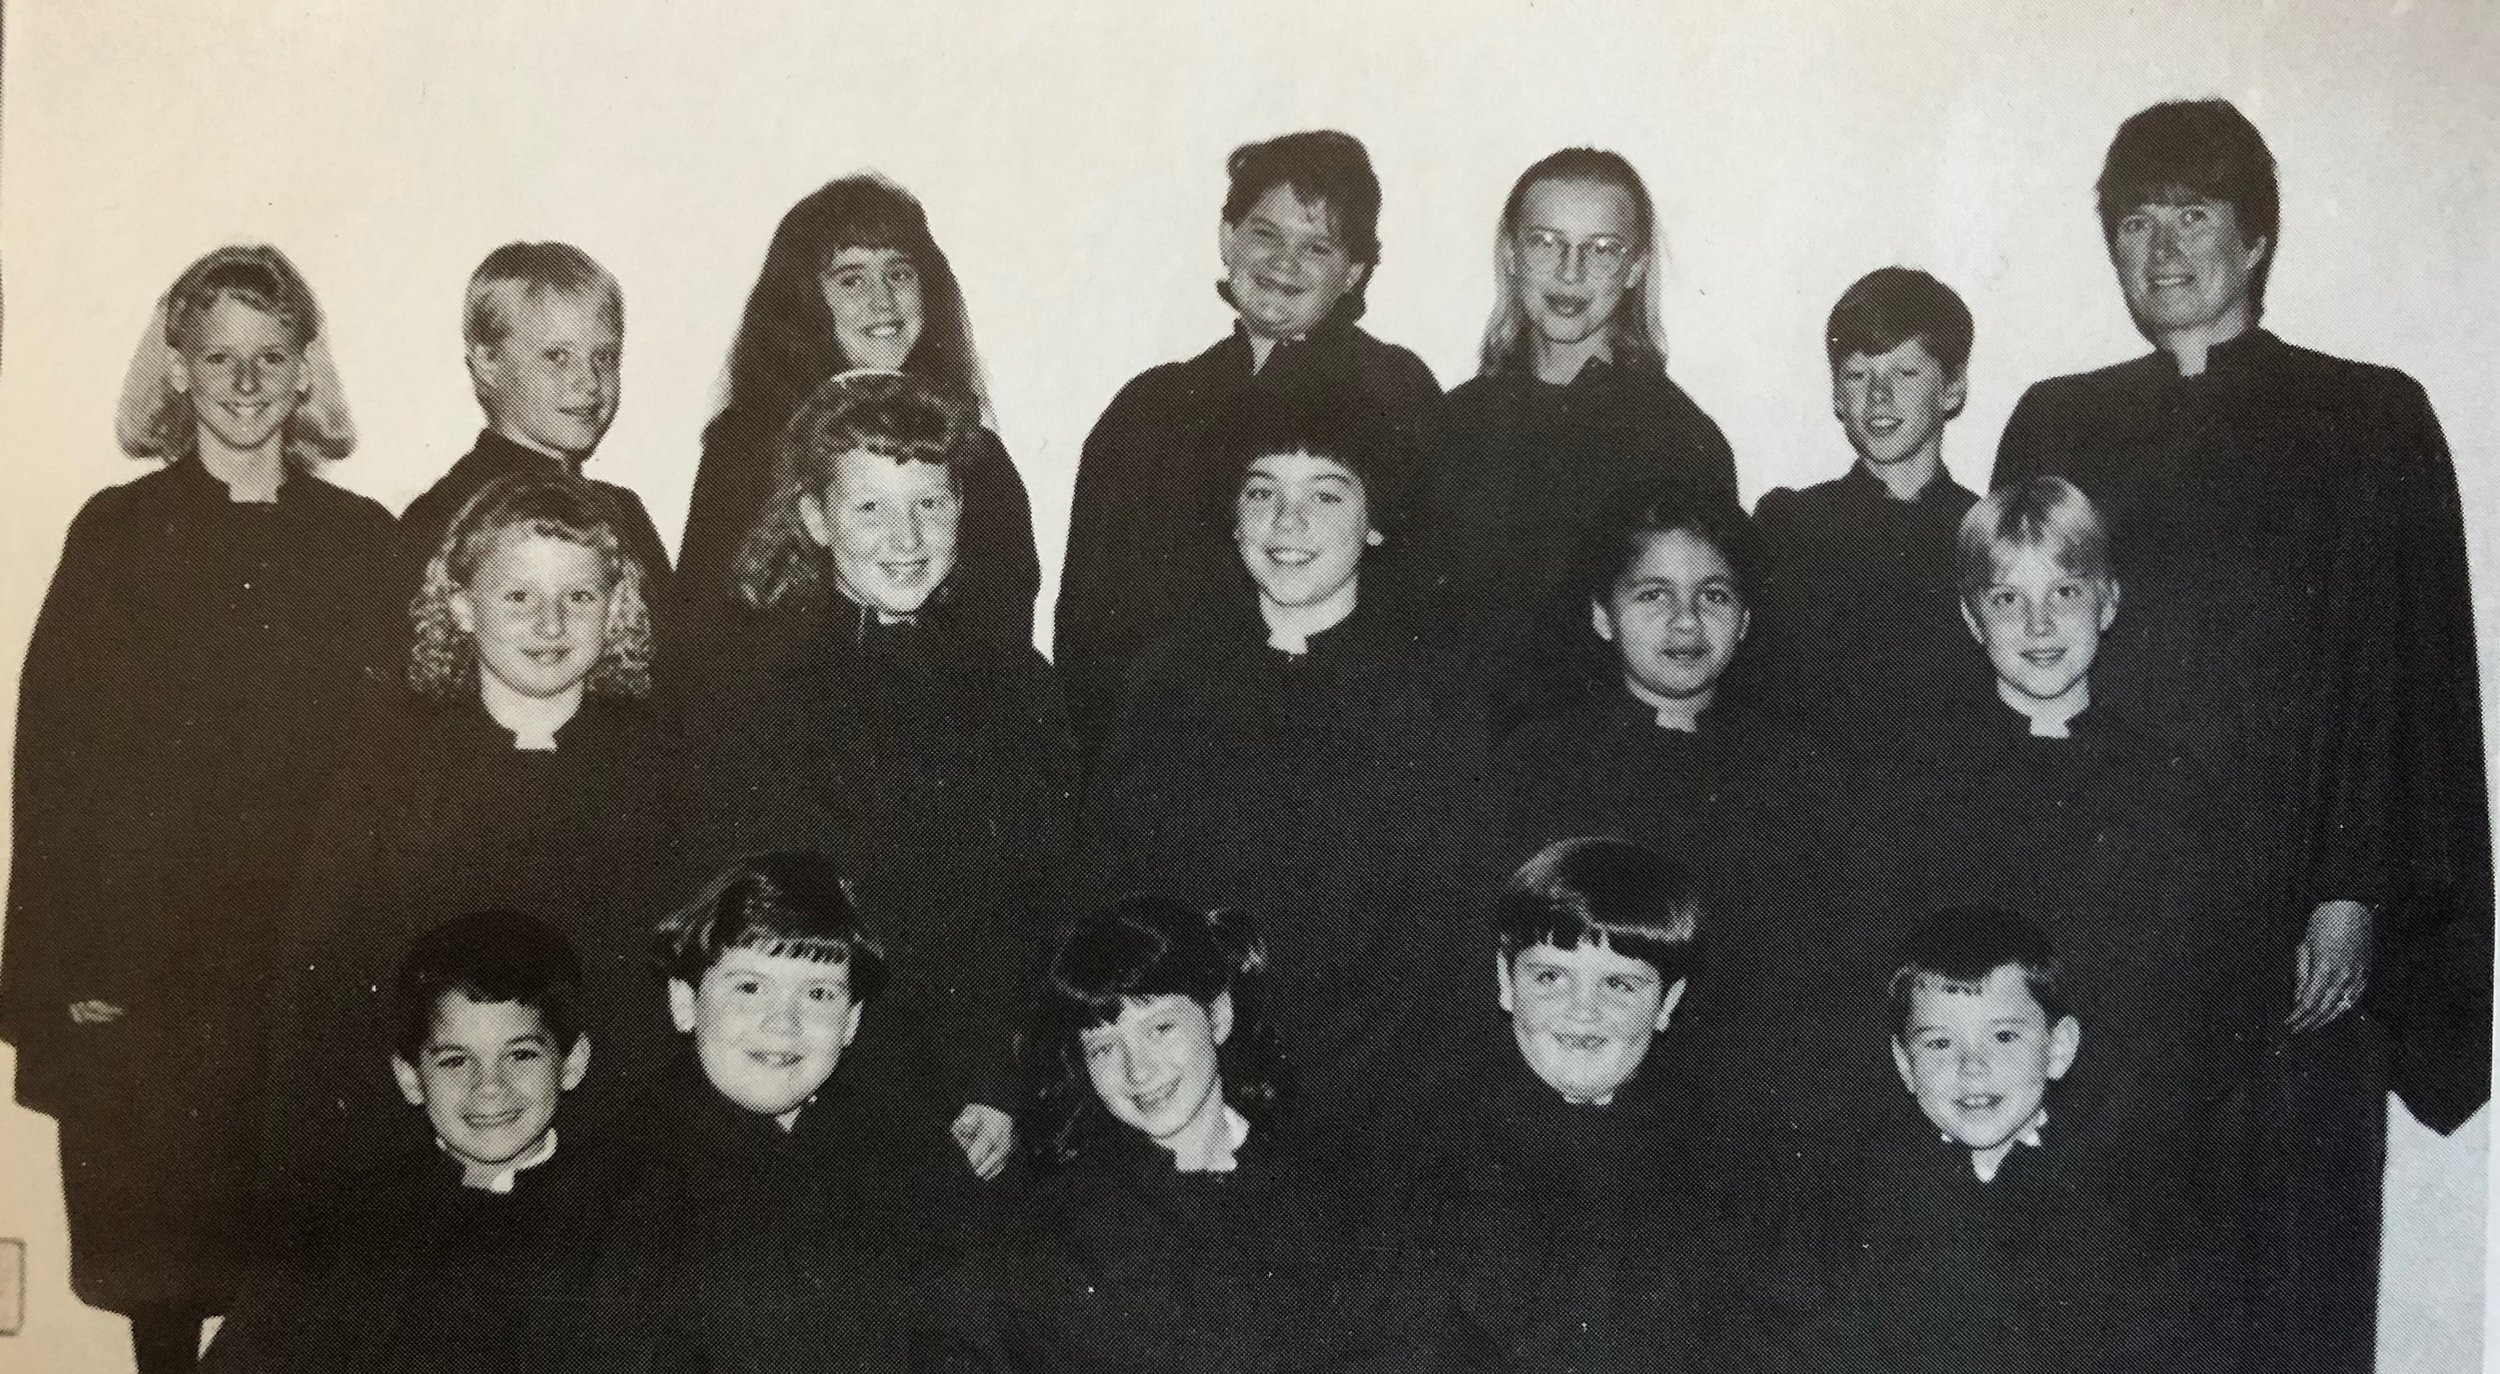 Junior Choir 1992 Back Row L-R:  Ashley Miller, Douglas Olson, Christine Cleland, Amy Porter, Lisa Olson, James Bristowe, Marion Bristowe (Director)  Middle Row L-R:  Carly Miller, Crystal Orth, Robyn Sage, Melissa Bahadoor, Lori Olson  Front Row L-R:  Joe Bahadoor, Heather Johnston, Kelly Bristowe, Nicole Kaufman, Stewart Skinner